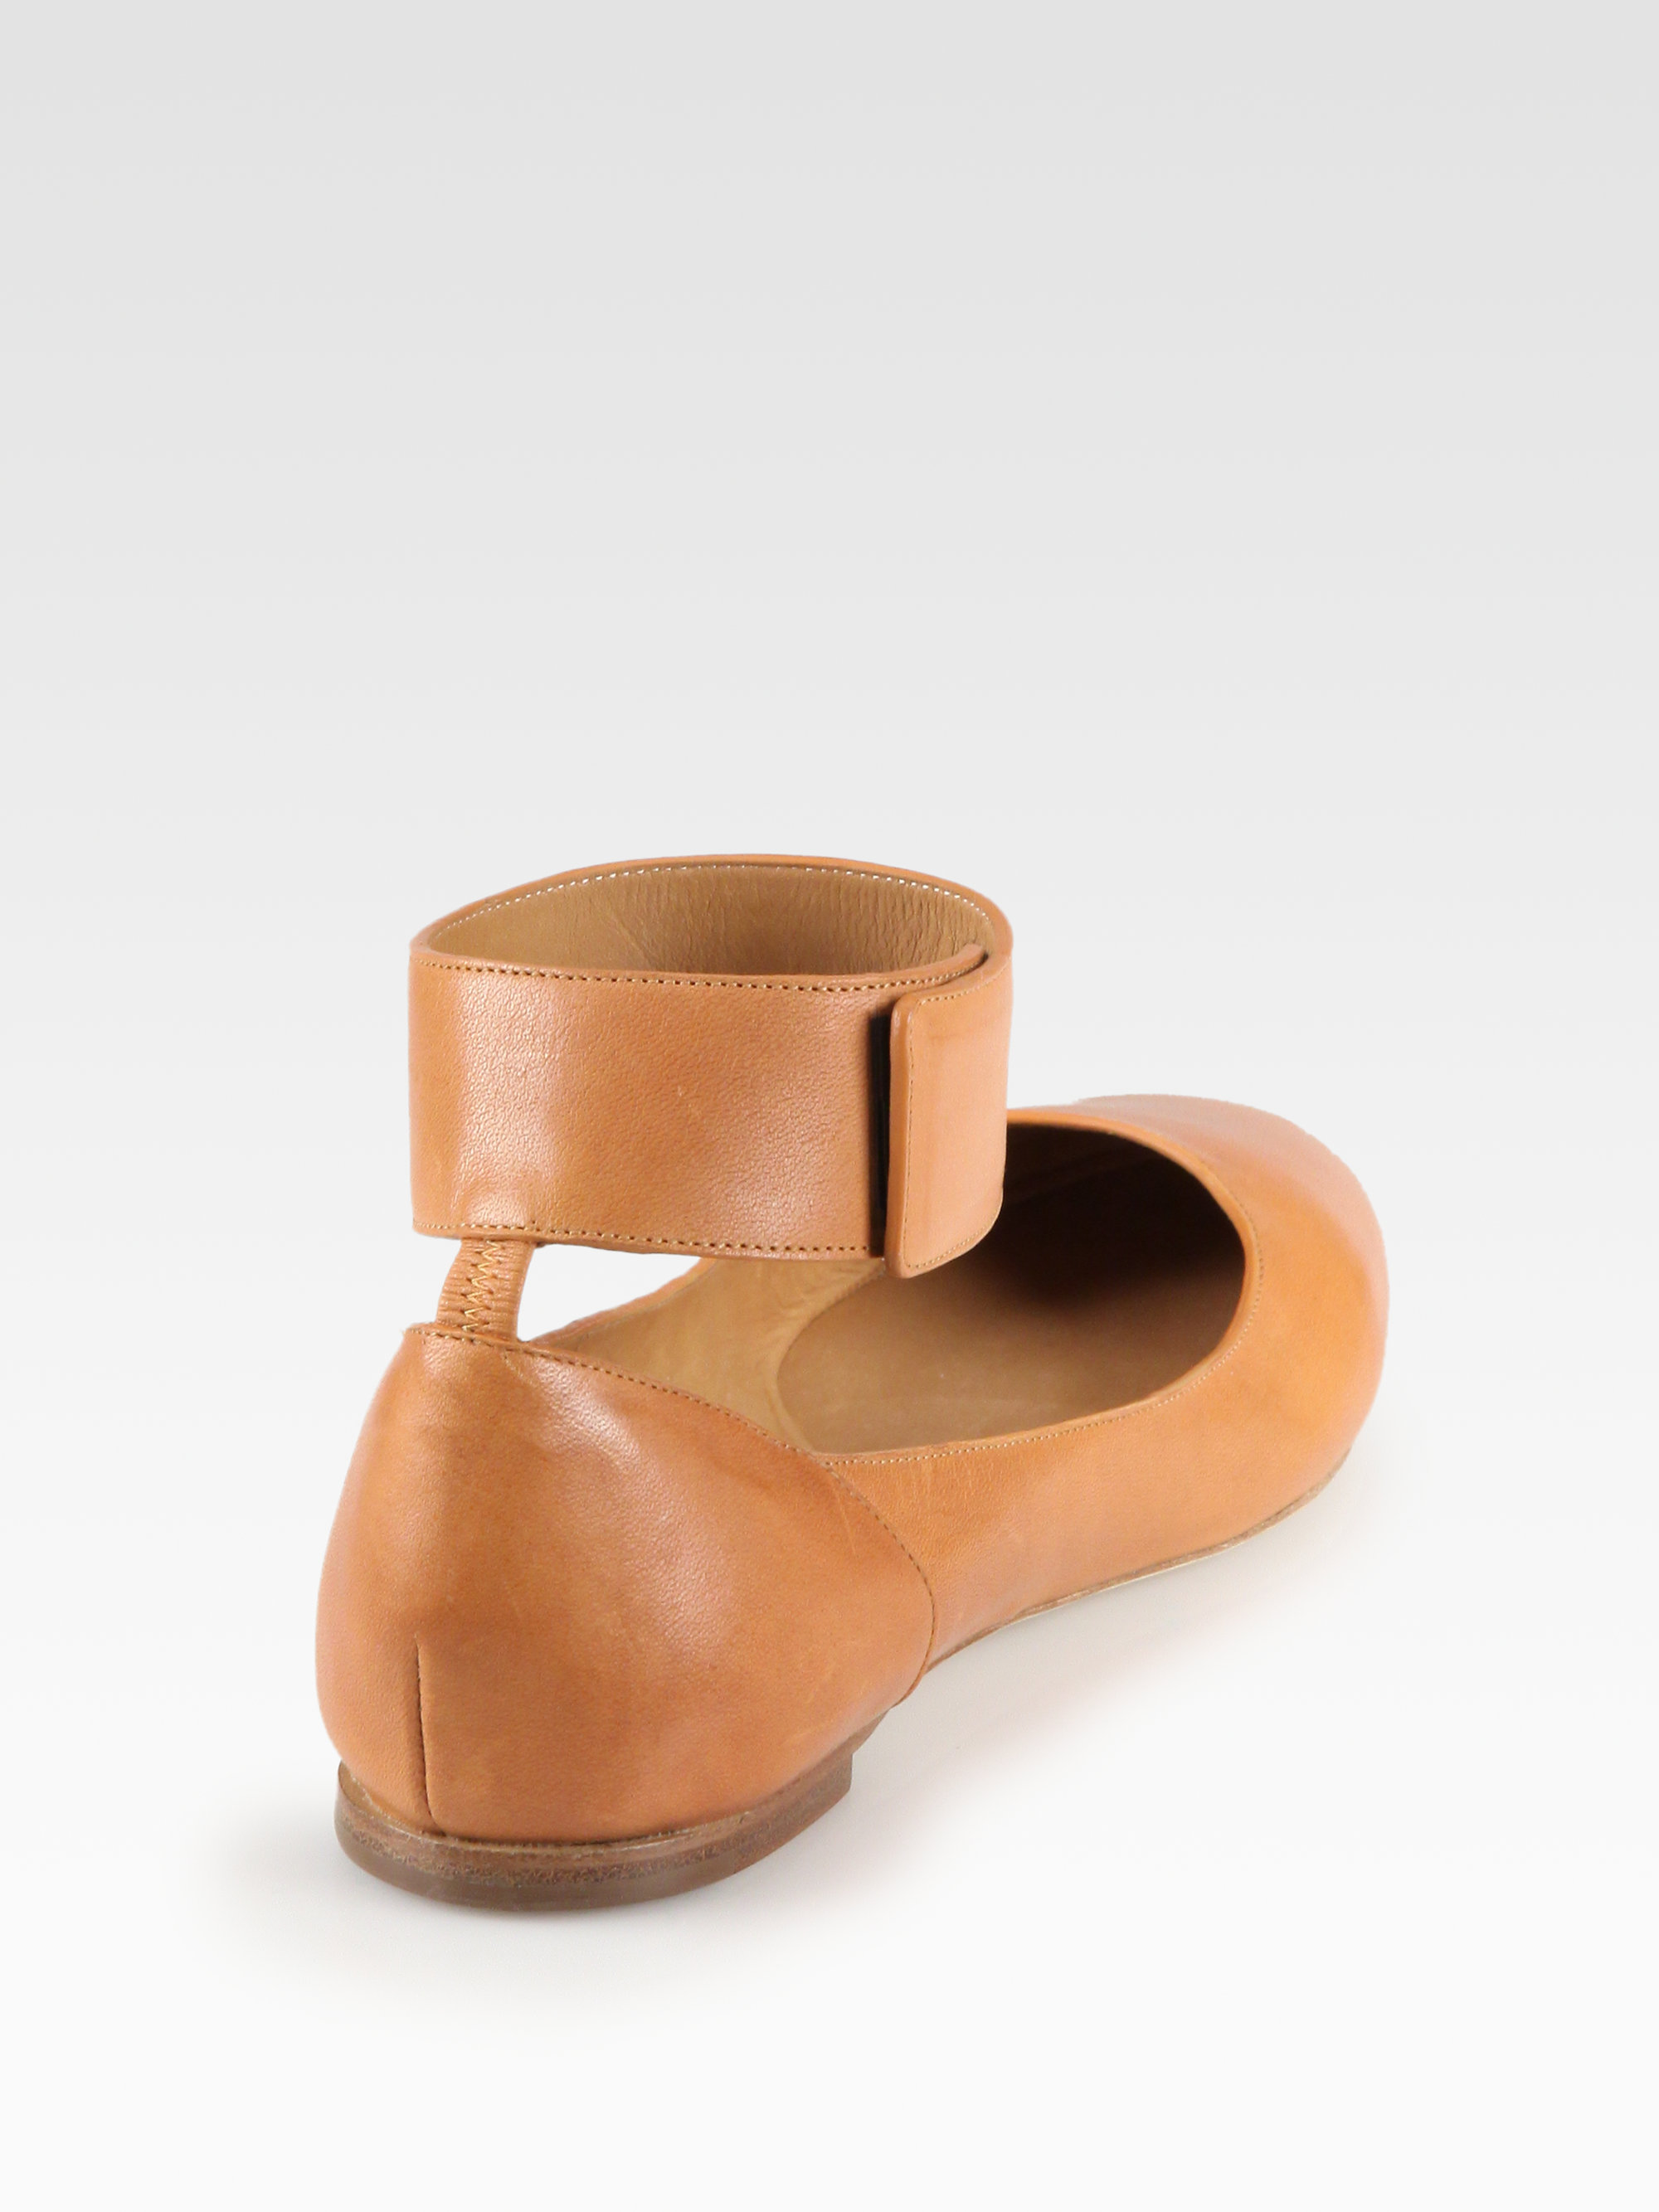 visa payment for sale Chloé Leather Ankle-Strap Flats cheap sale latest collections SN34NfWp